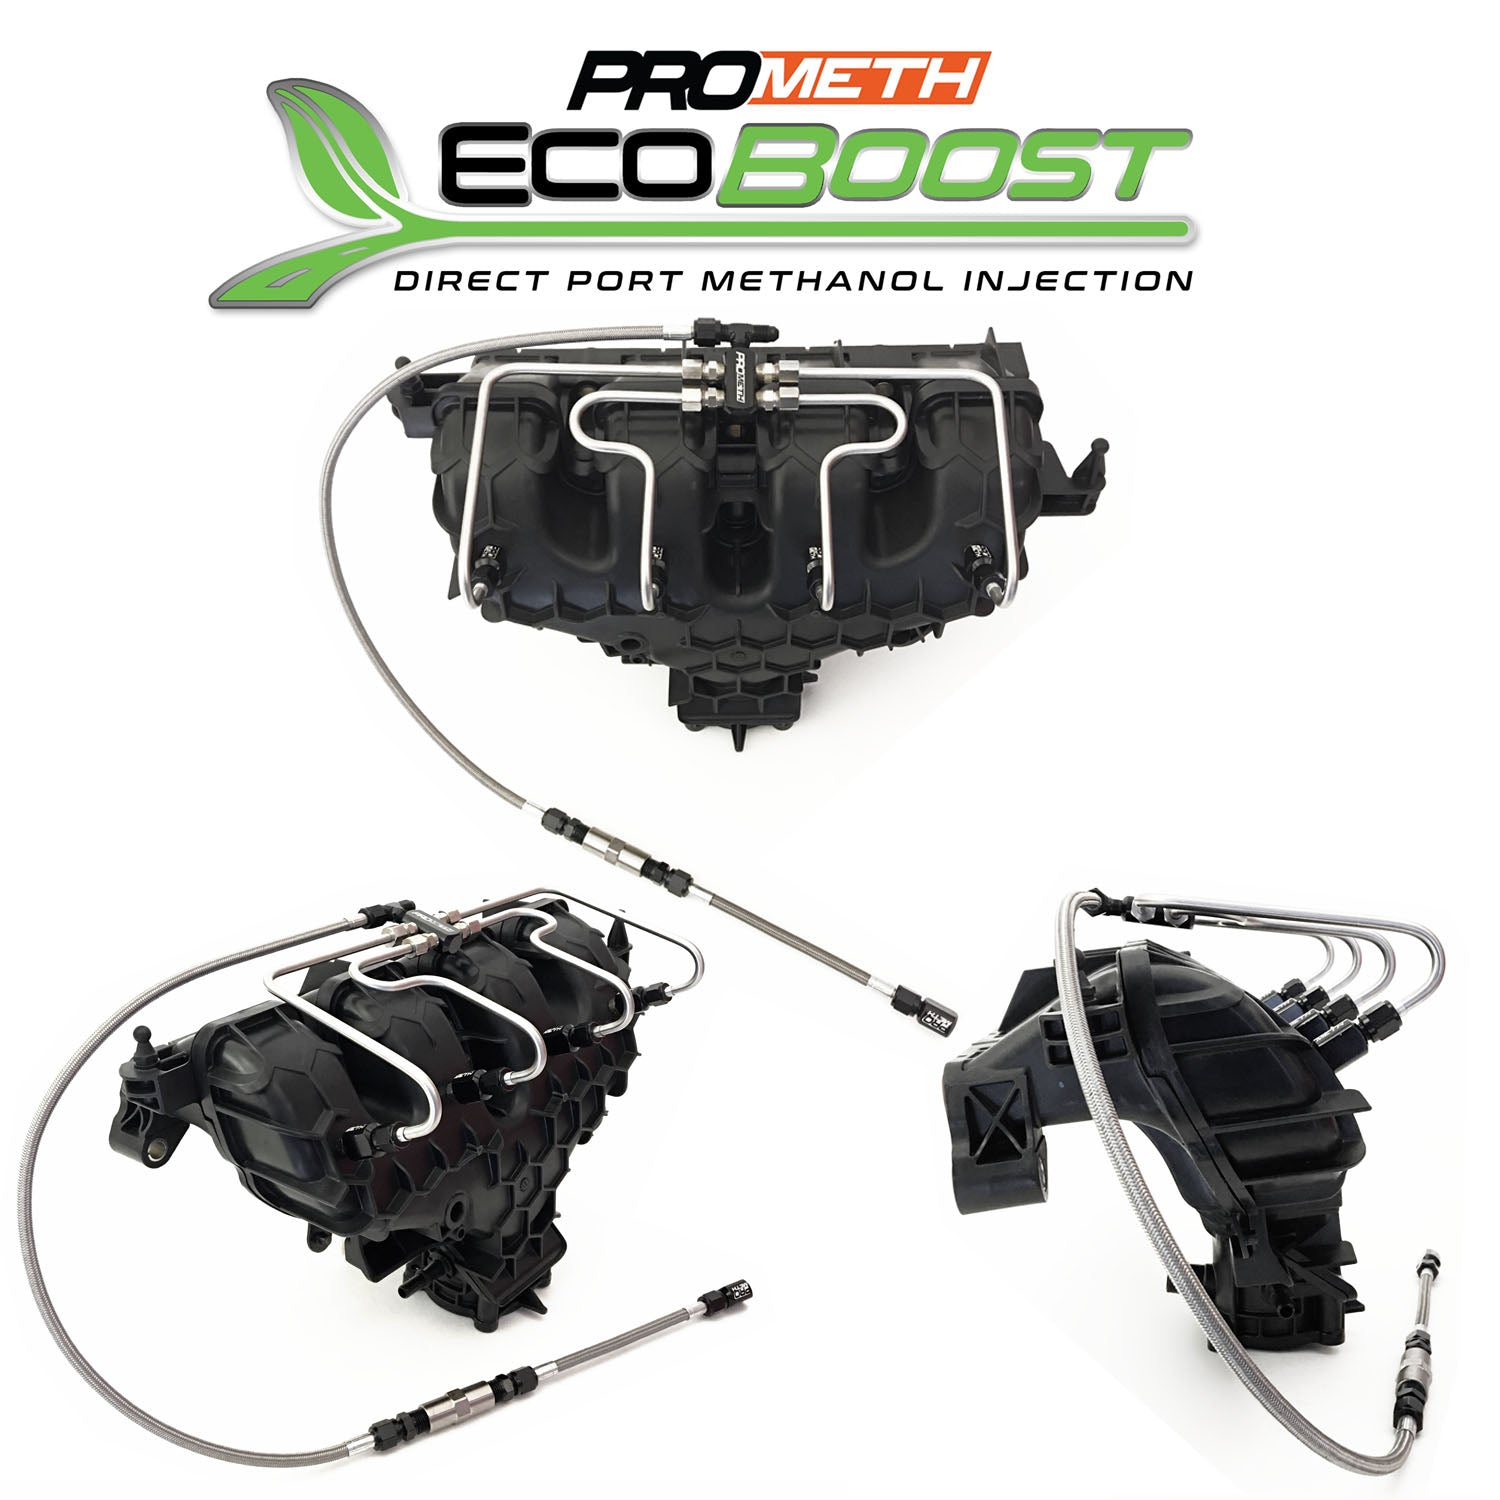 Ford SVT Focus Ecoboost 2.0L Direct Port Methanol Injection With Pre Compressor Injection